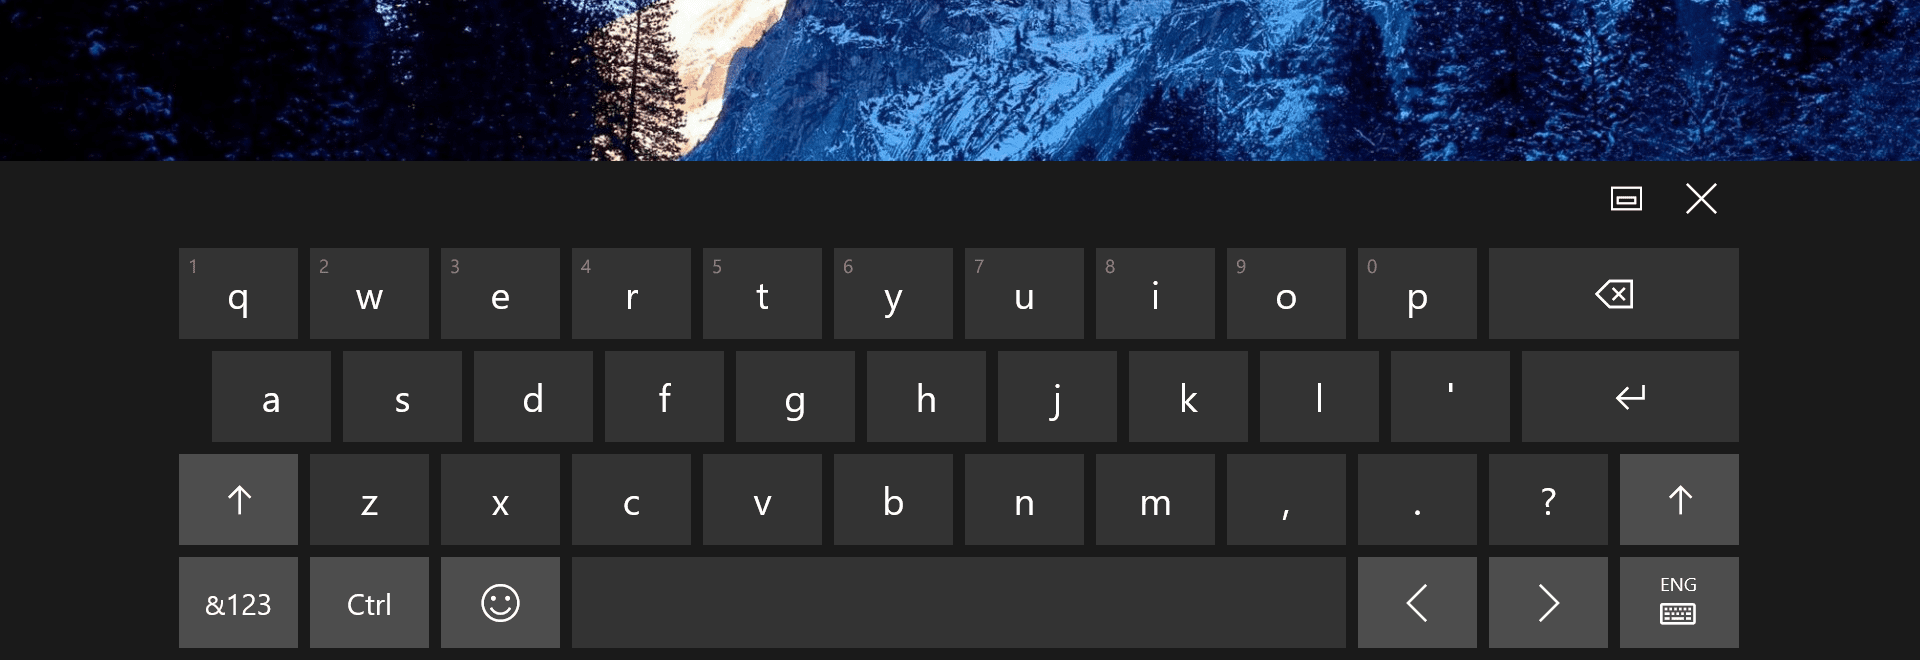 how to get my on screen keyboard windows 10